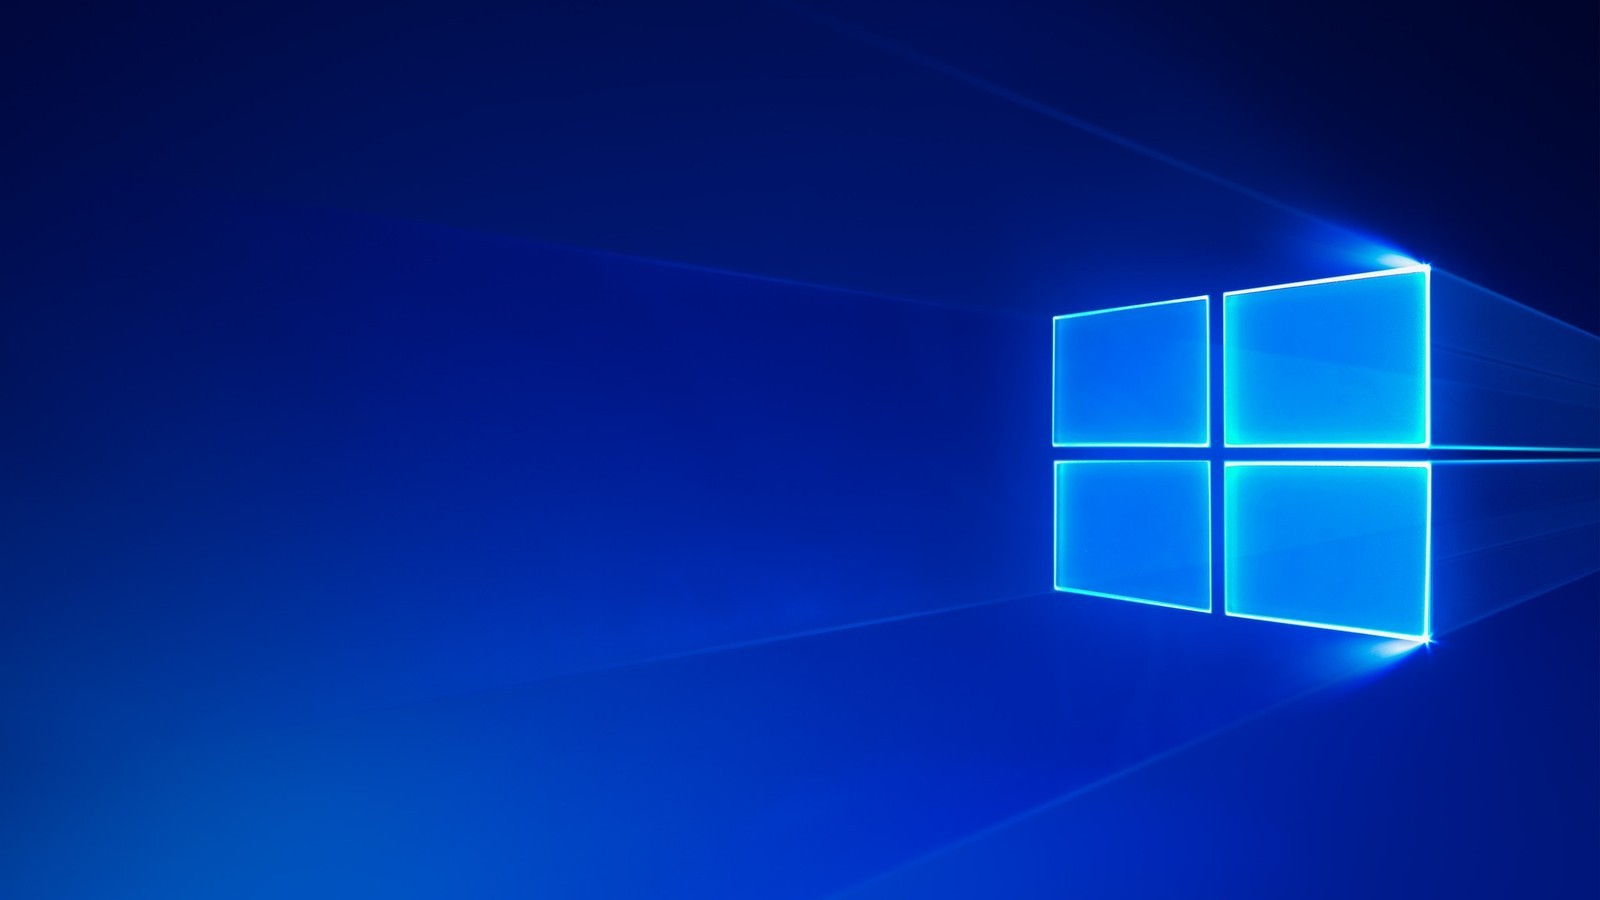 microsoft officially claims that there are more than 400 million active users of windows 10 as of april 2018 windows 10 is continuously improvising since